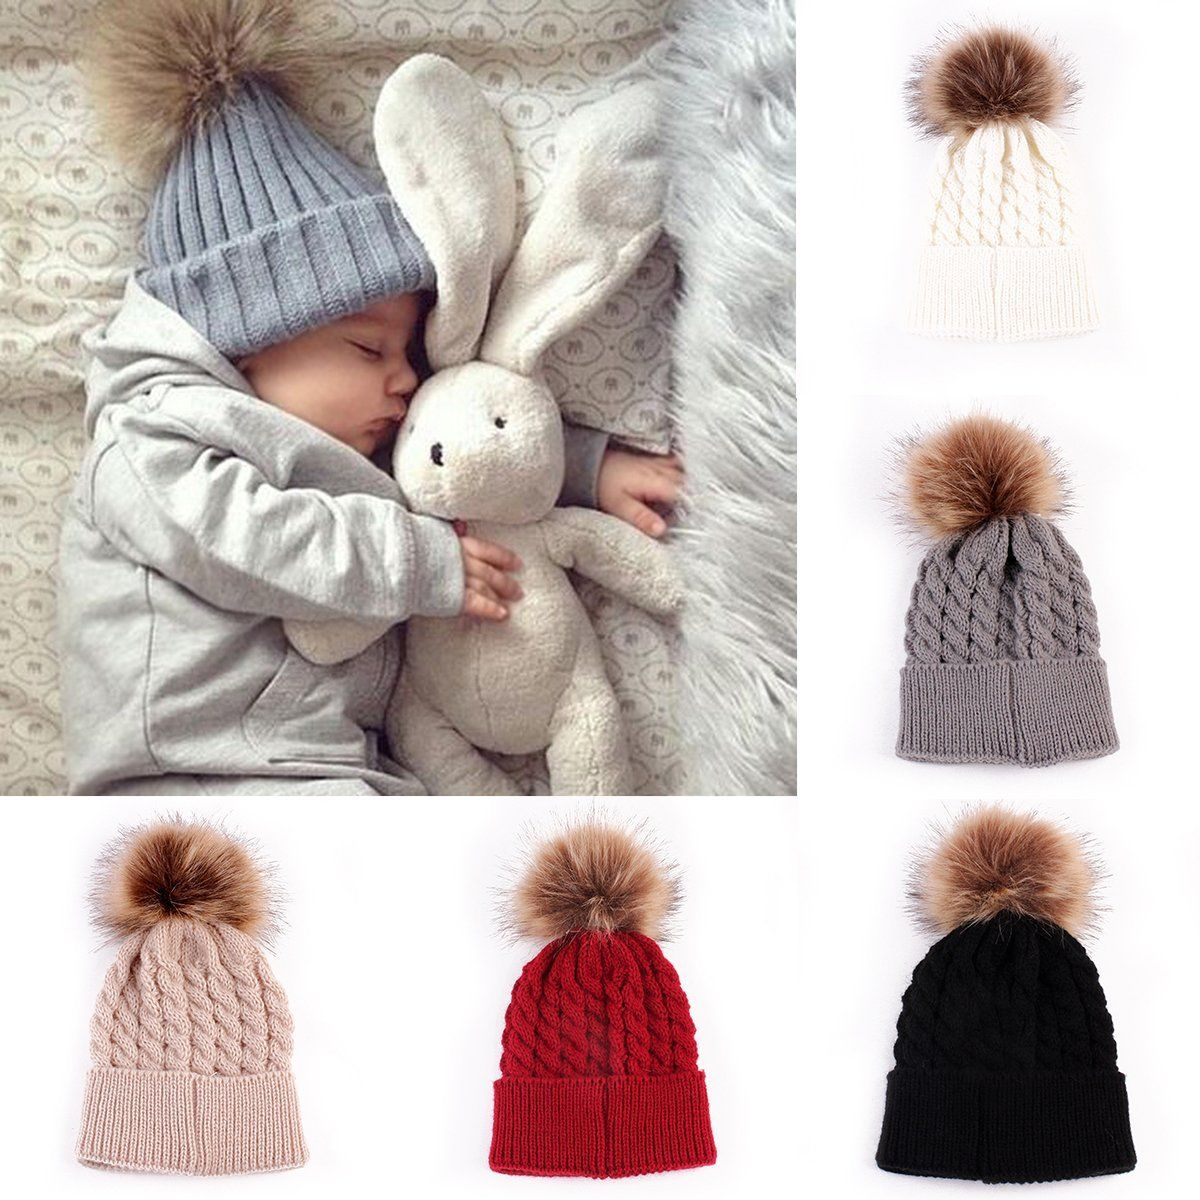 Infant Winter Warm Knit Crochet Caps Baby Beanie Hat Toddler Kid Faux Fur pom pom Knit skullies ski Cap 0-3 years just like other daughters